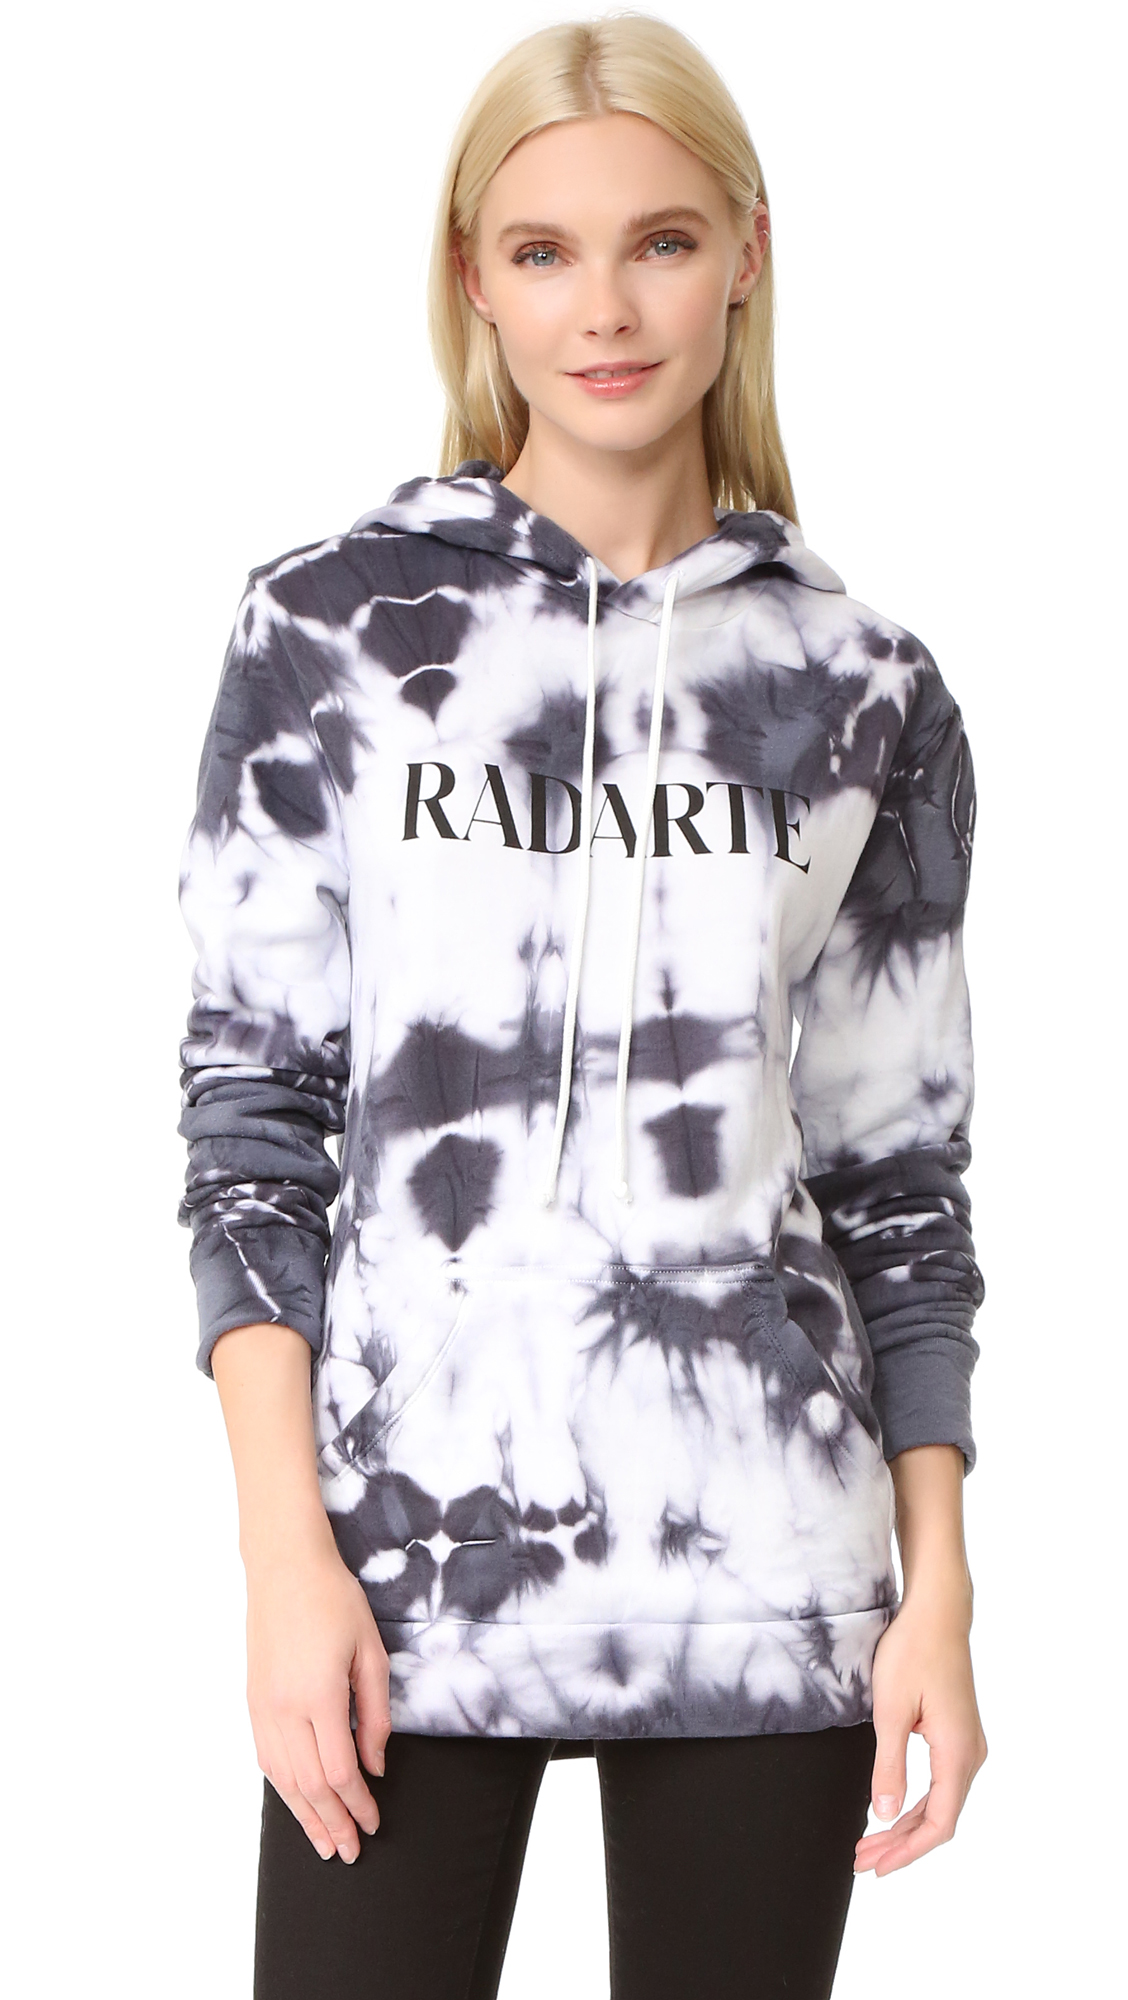 'RADARTE' lettering brings signature style to this tie tye Rodarte hoodie. Pouch pocket. Long sleeves. Fabric: Fleece. 80% cotton/20% polyester. Wash cold. Made in the USA. Measurements Length: 28in / 71cm, from shoulder Measurements from size S. Available